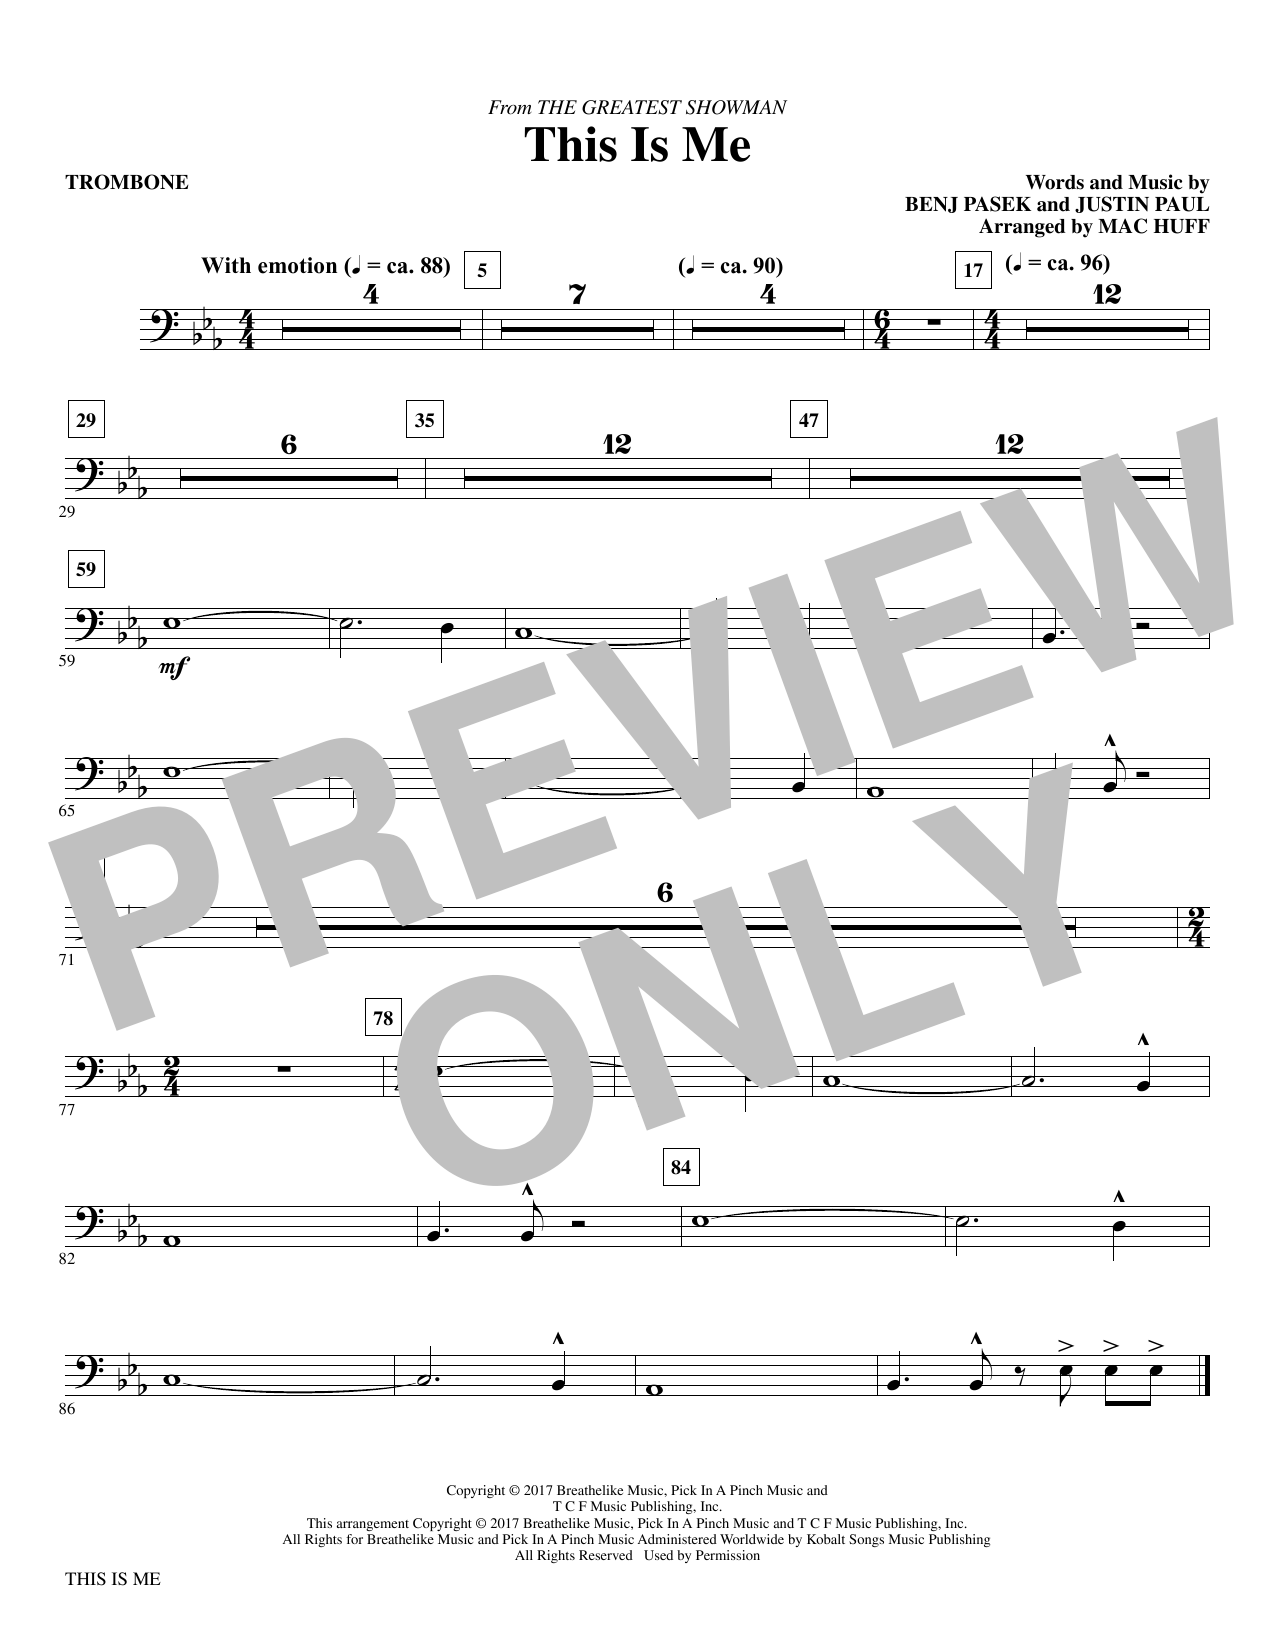 graphic about Free Printable Trombone Sheet Music referred to as Pasek Paul This Is Me (in opposition to The Major Showman) (arr. Mac Huff) - Trombone Sheet Songs Notes, Chords Down load Printable Choir Instrumental Pak